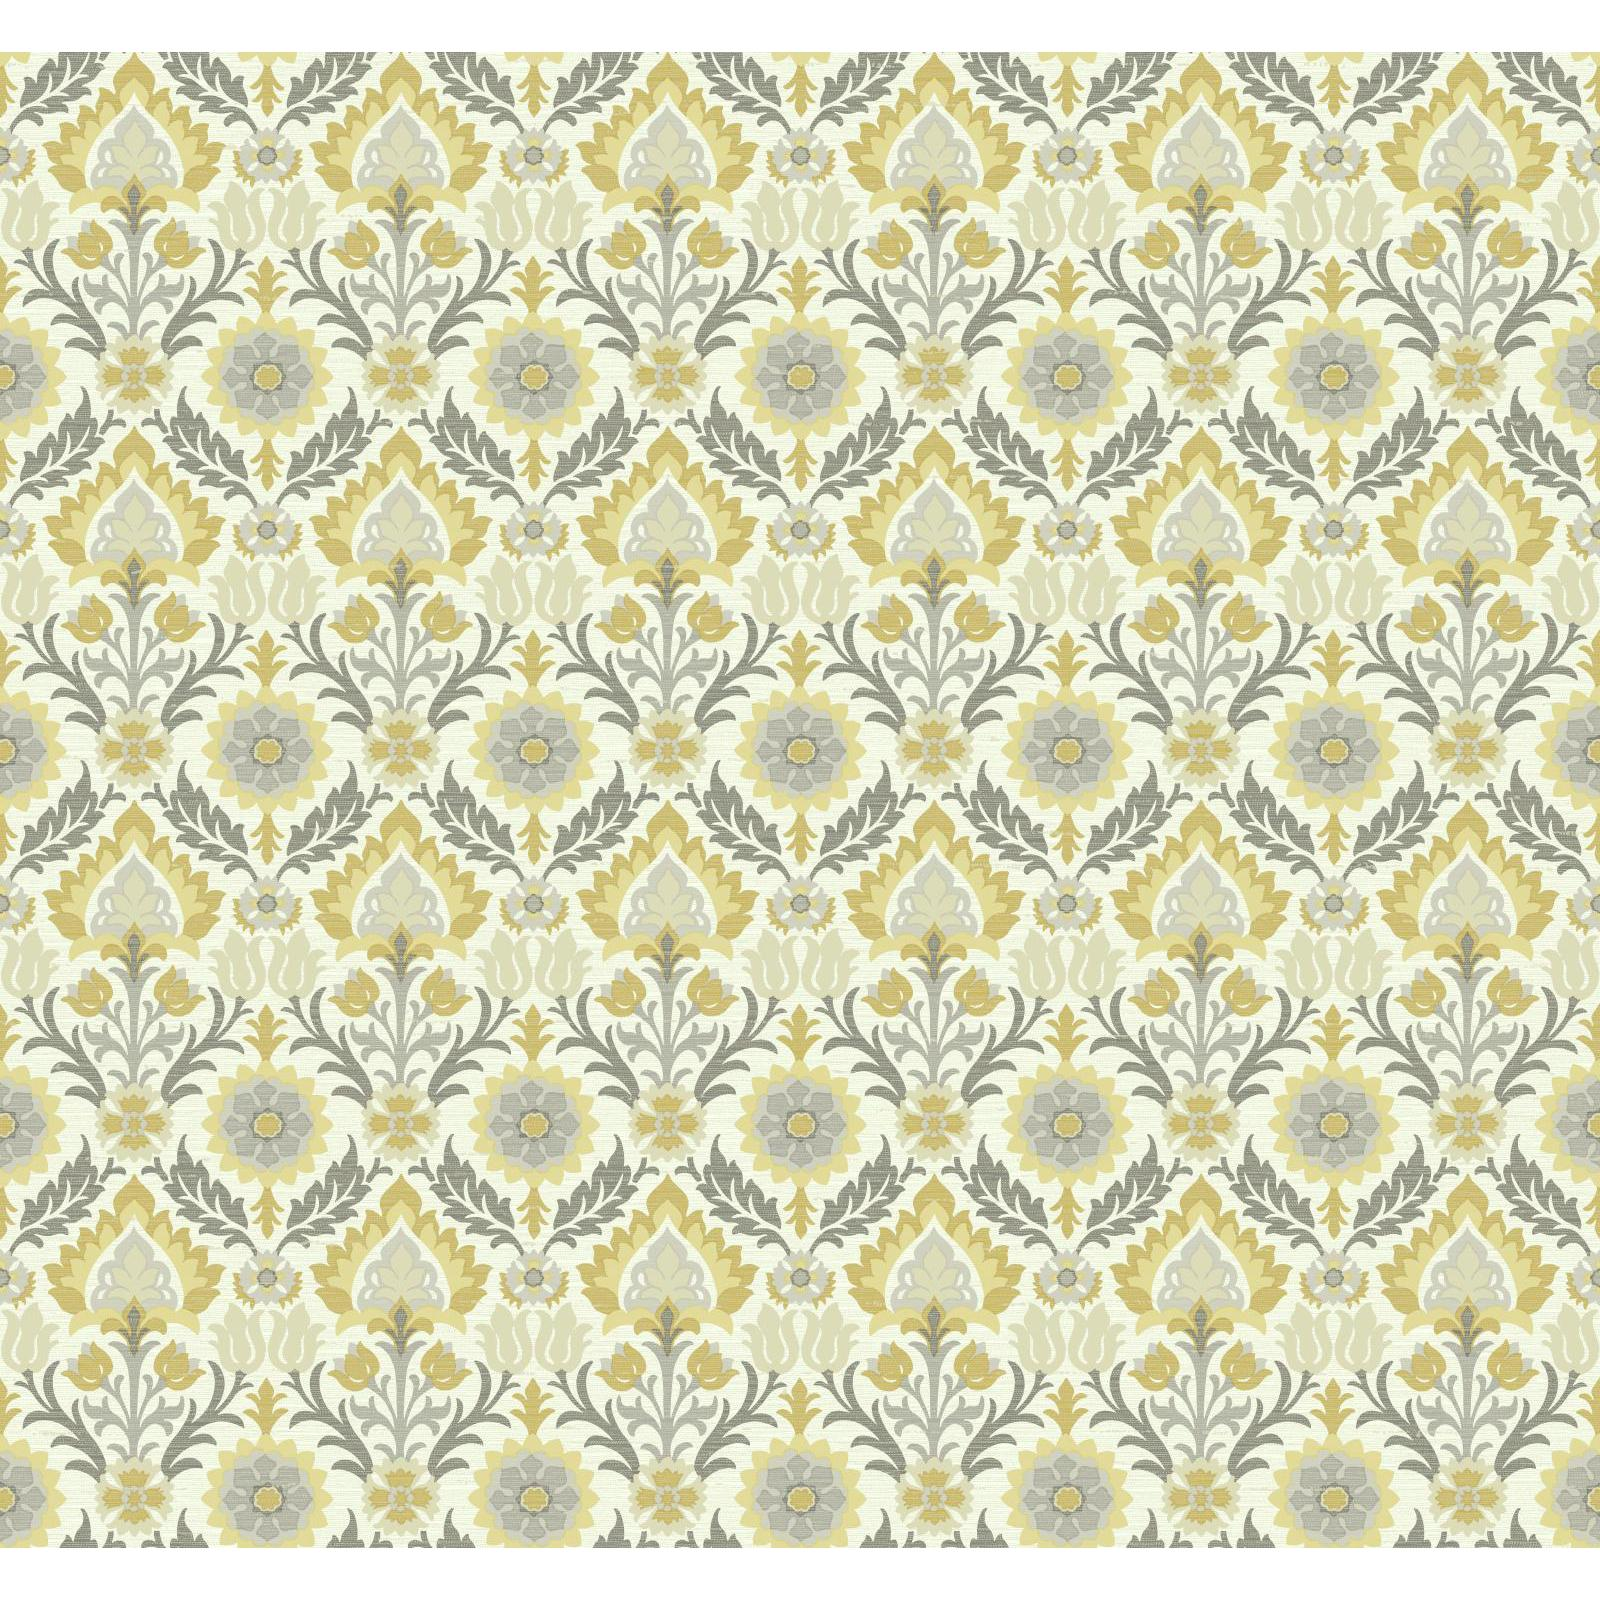 York Wallcoverings Waverly Small Prints Santa Maria Wallpaper, Ivory/Mustard Yellow/Muted Buttercup Yellow/Pale Grey/Medium Grey/Dark Grey/Beige 00921563000